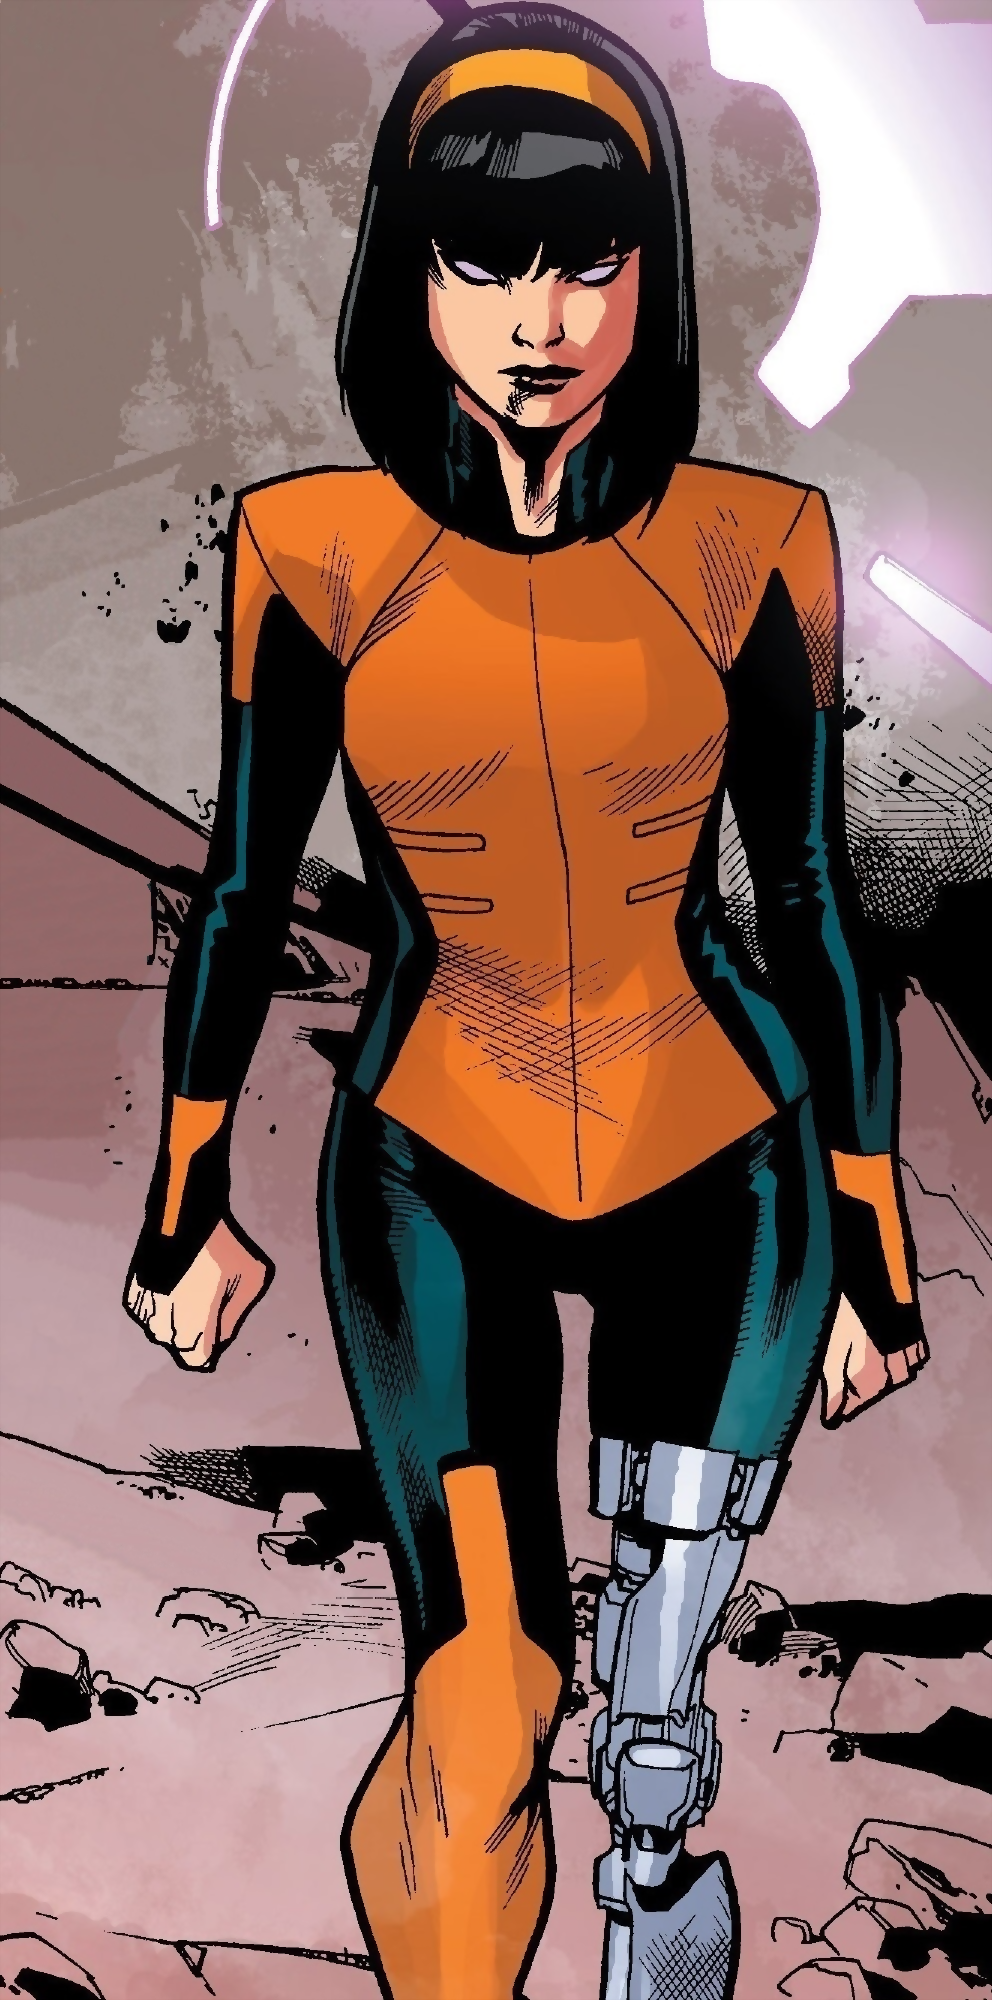 http://vignette2.wikia.nocookie.net/marveldatabase/images/0/09/Xi%27an_Coy_Manh_%28Earth-616%29_from_All-New_X-Men_Vol_1_40_001.png/revision/latest?cb=20150424231148